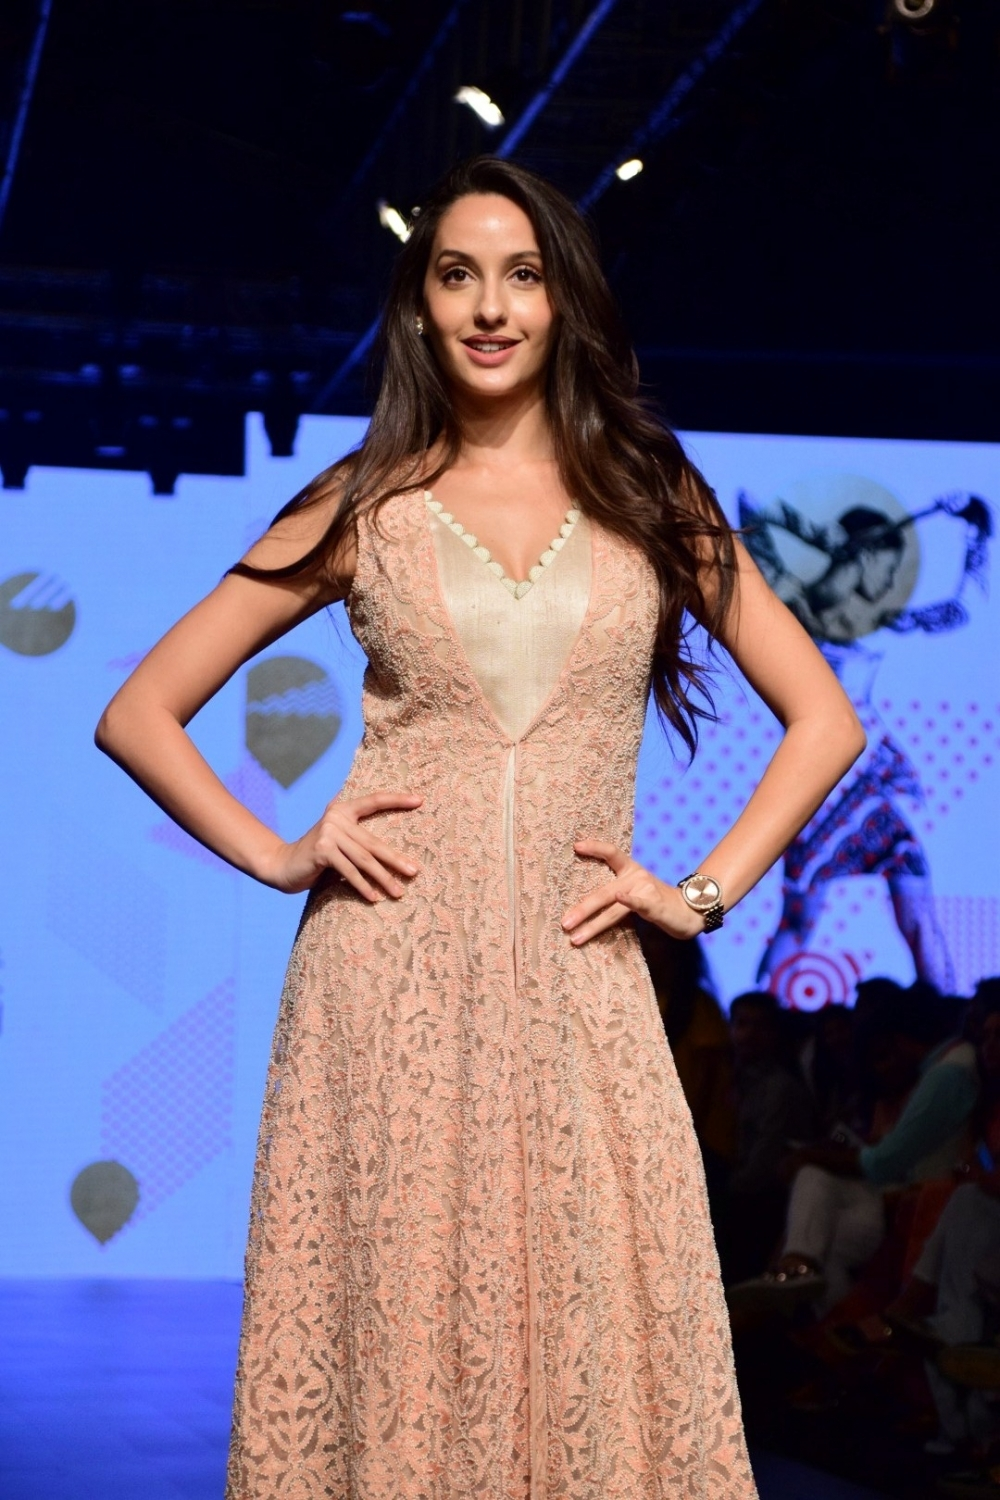 Mumbai: Model Nora Fatehi during the Lakme Fashion Week Summer/Resort 2017, in Mumbai, on Feb 3, 2017. (Photo: IANS)